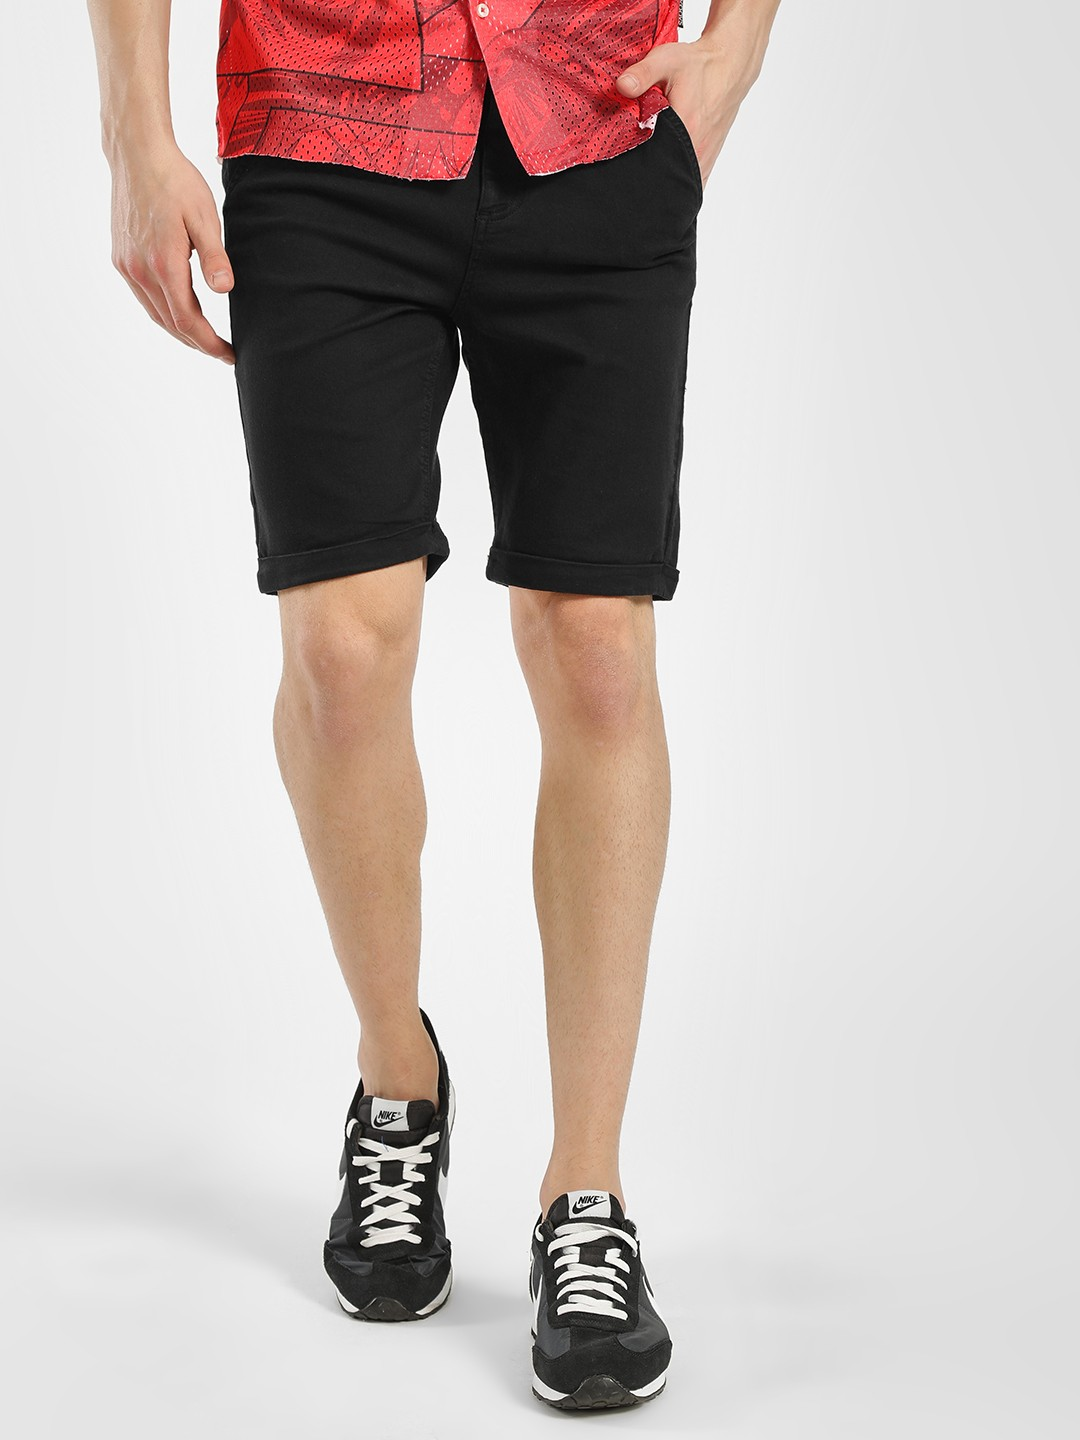 Blue Saint Black Basic Slim Fit Shorts 1